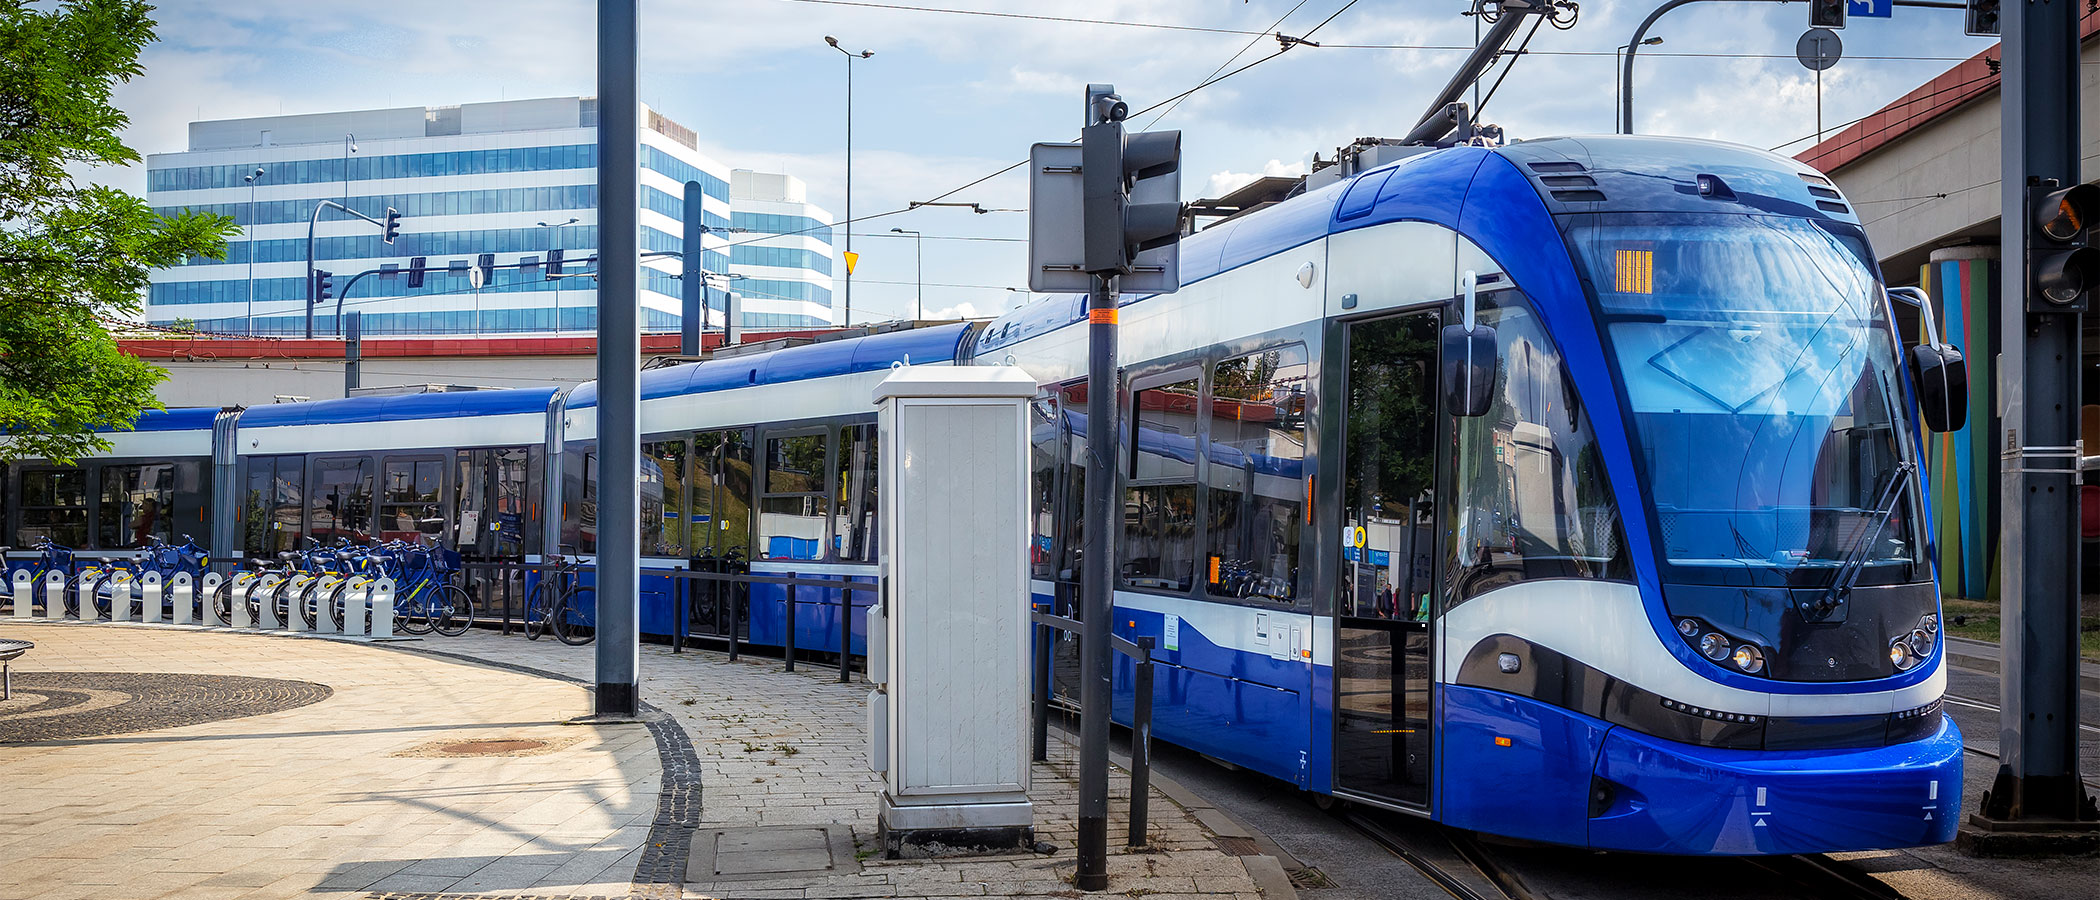 Light rail vehicle in Krakow, Poland